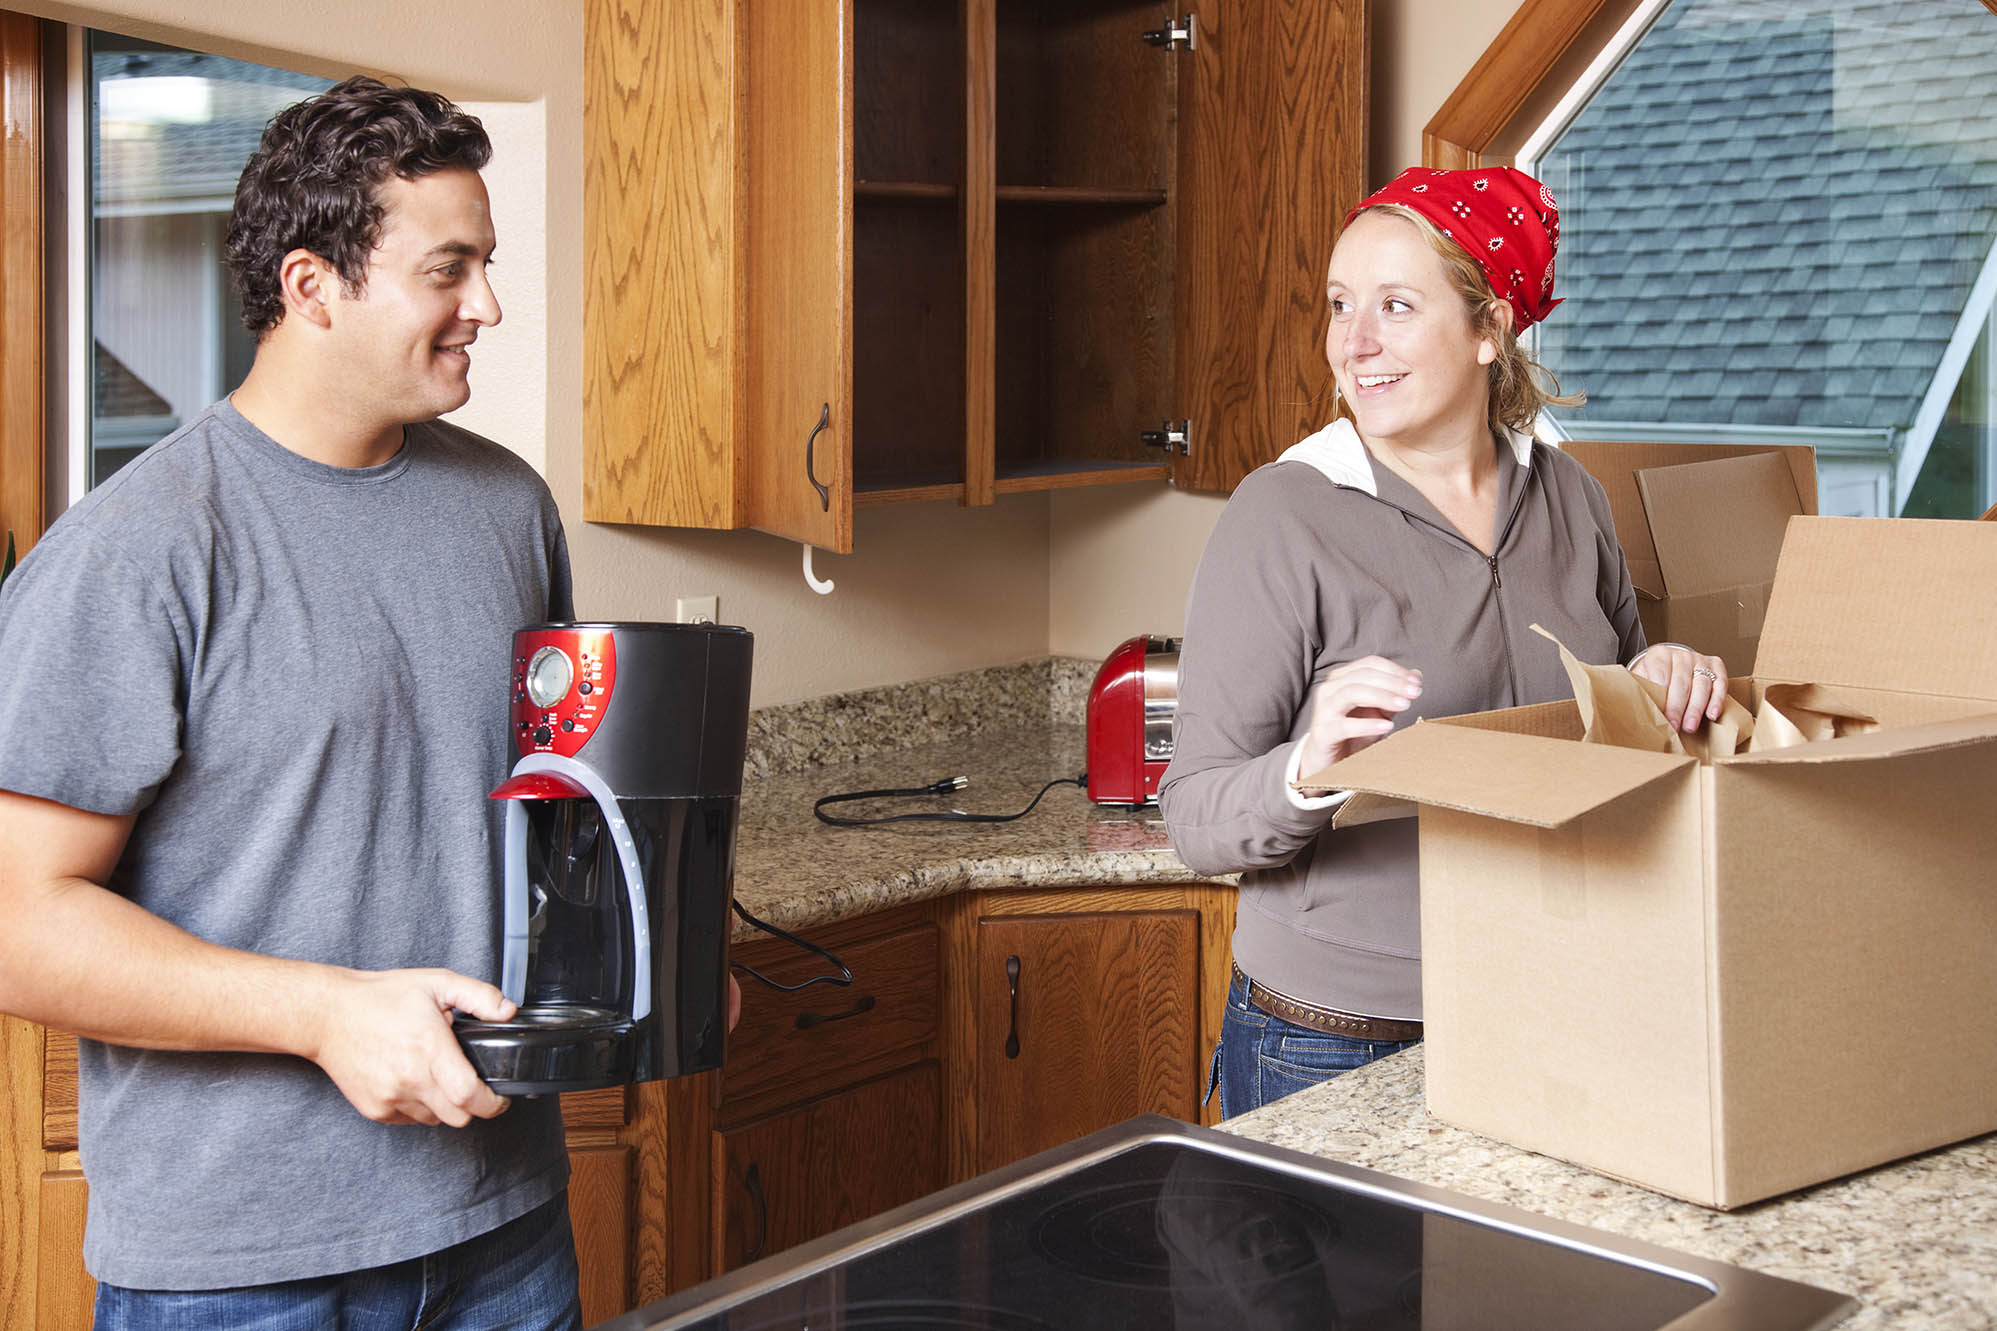 Two people packing appliances in a kitchen